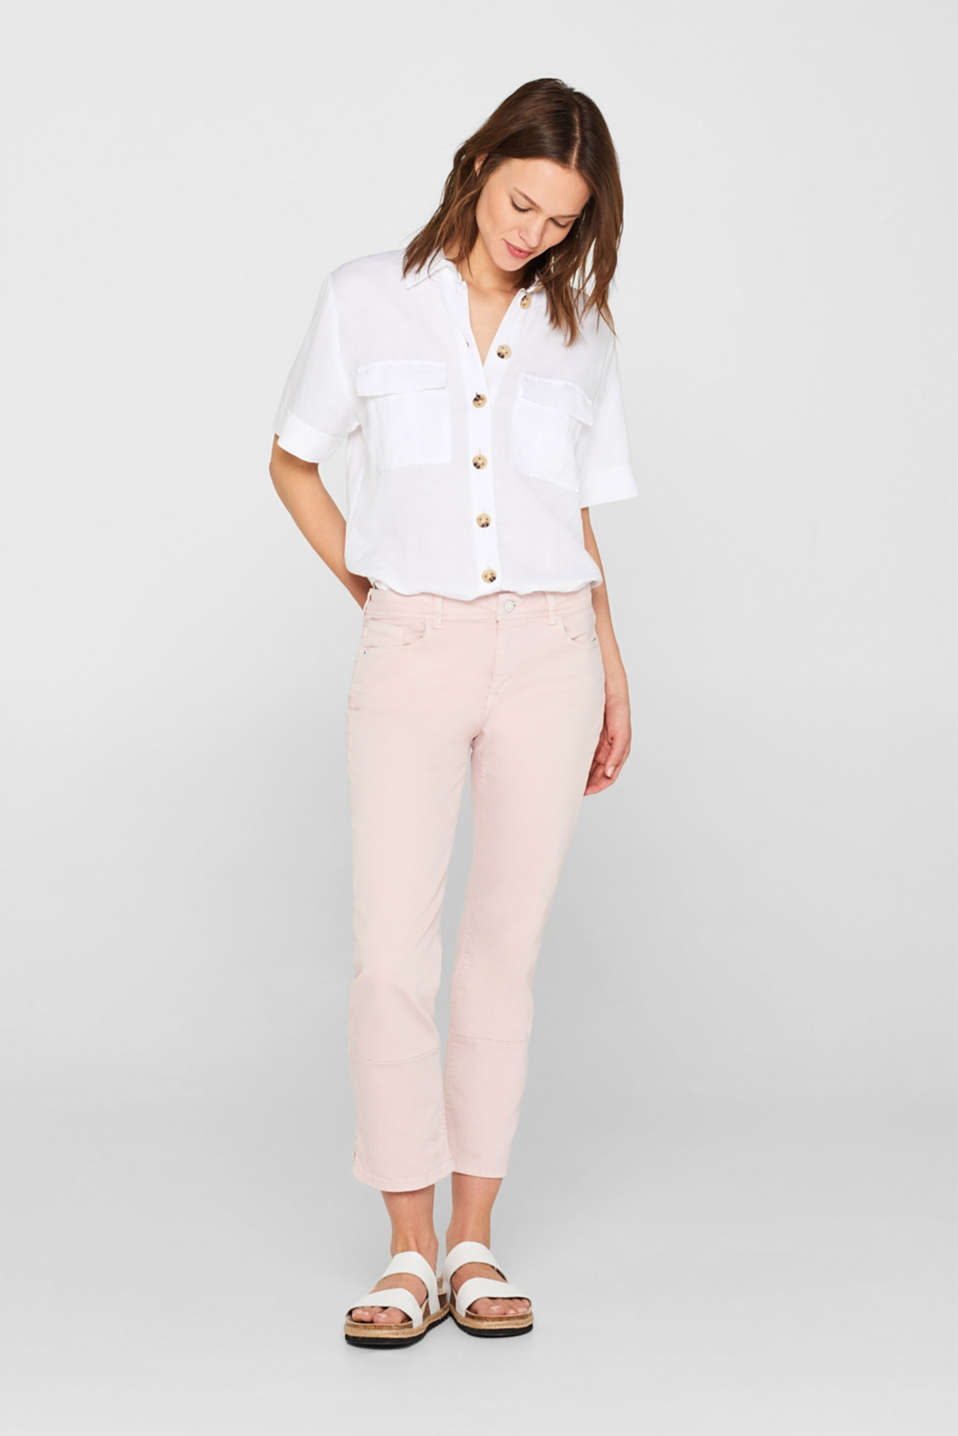 Ankle-length stretch jeans, organic cotton